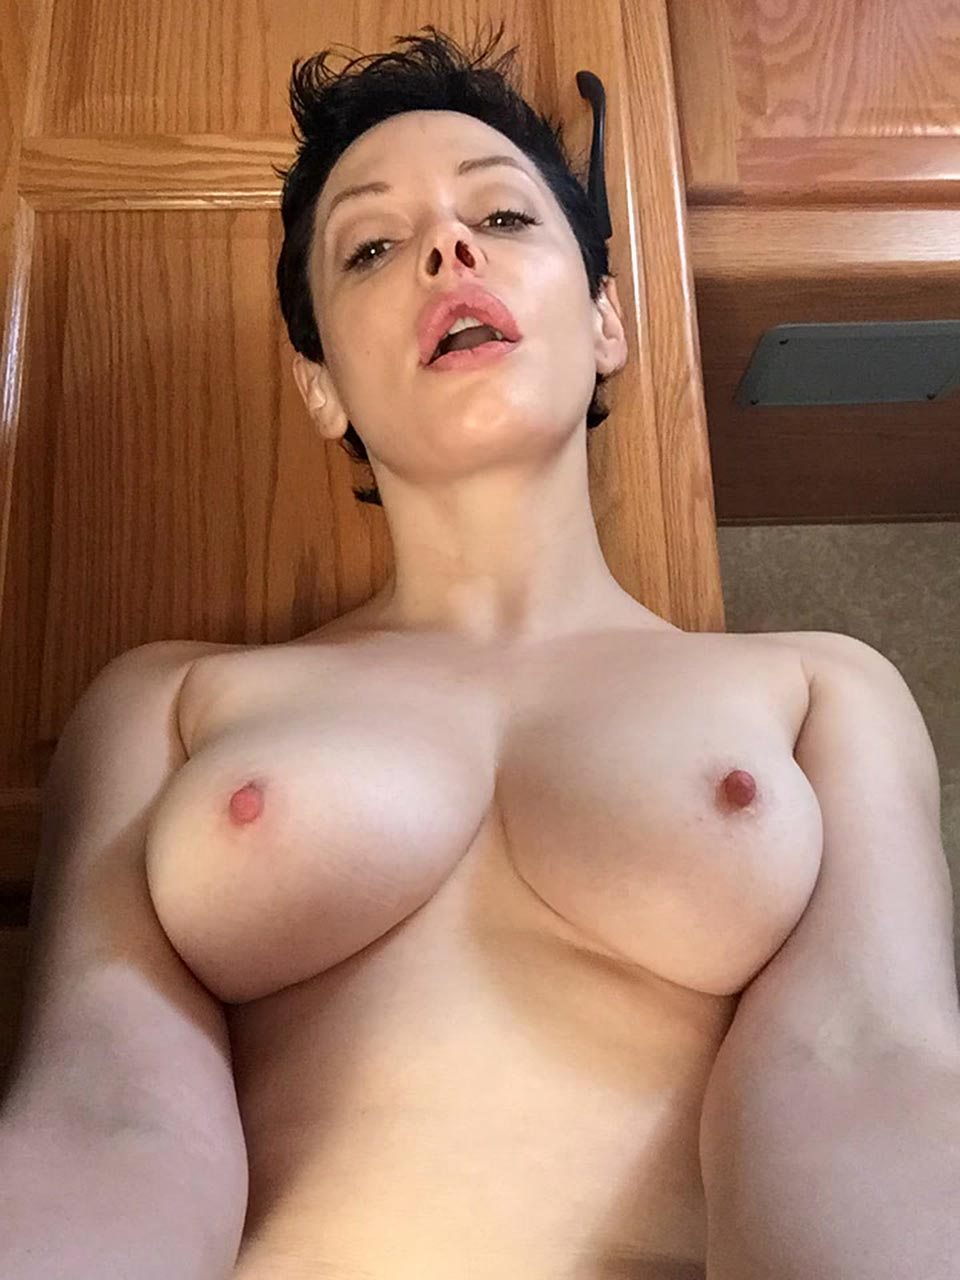 Nude rose mcgowan photos